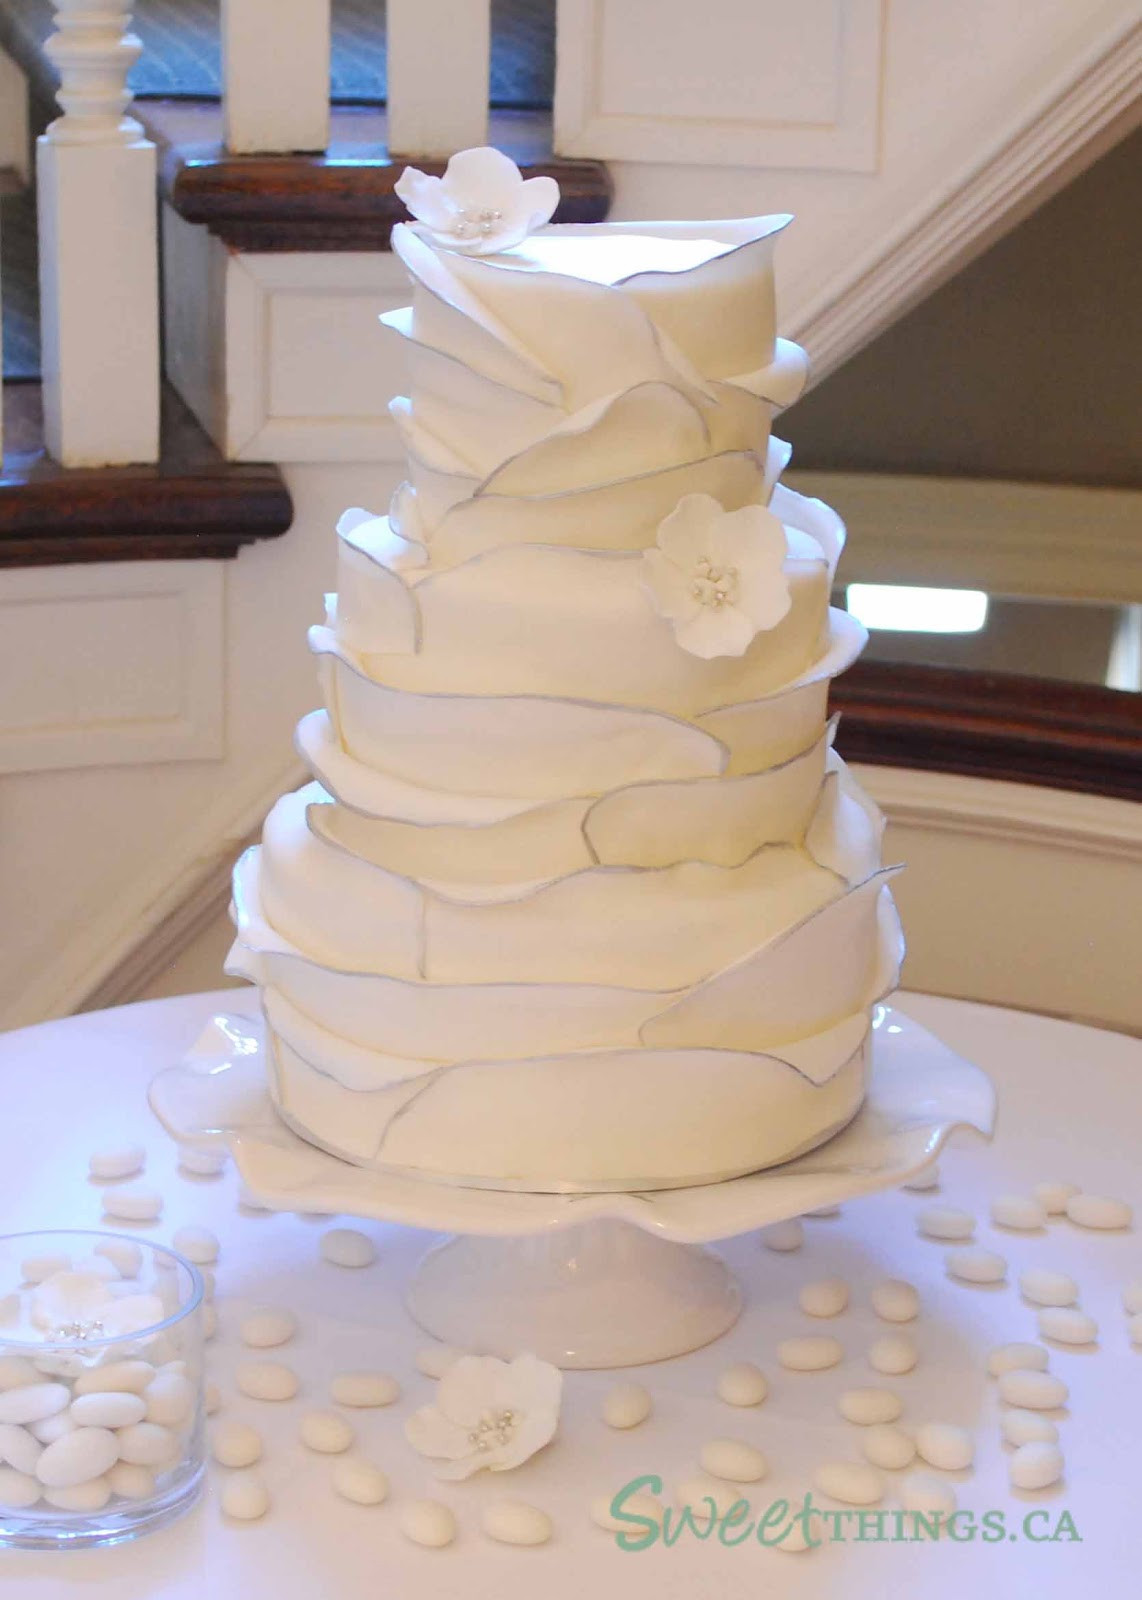 Ruffles Wedding Cakes  SweetThings Ruffled Wedding Cake